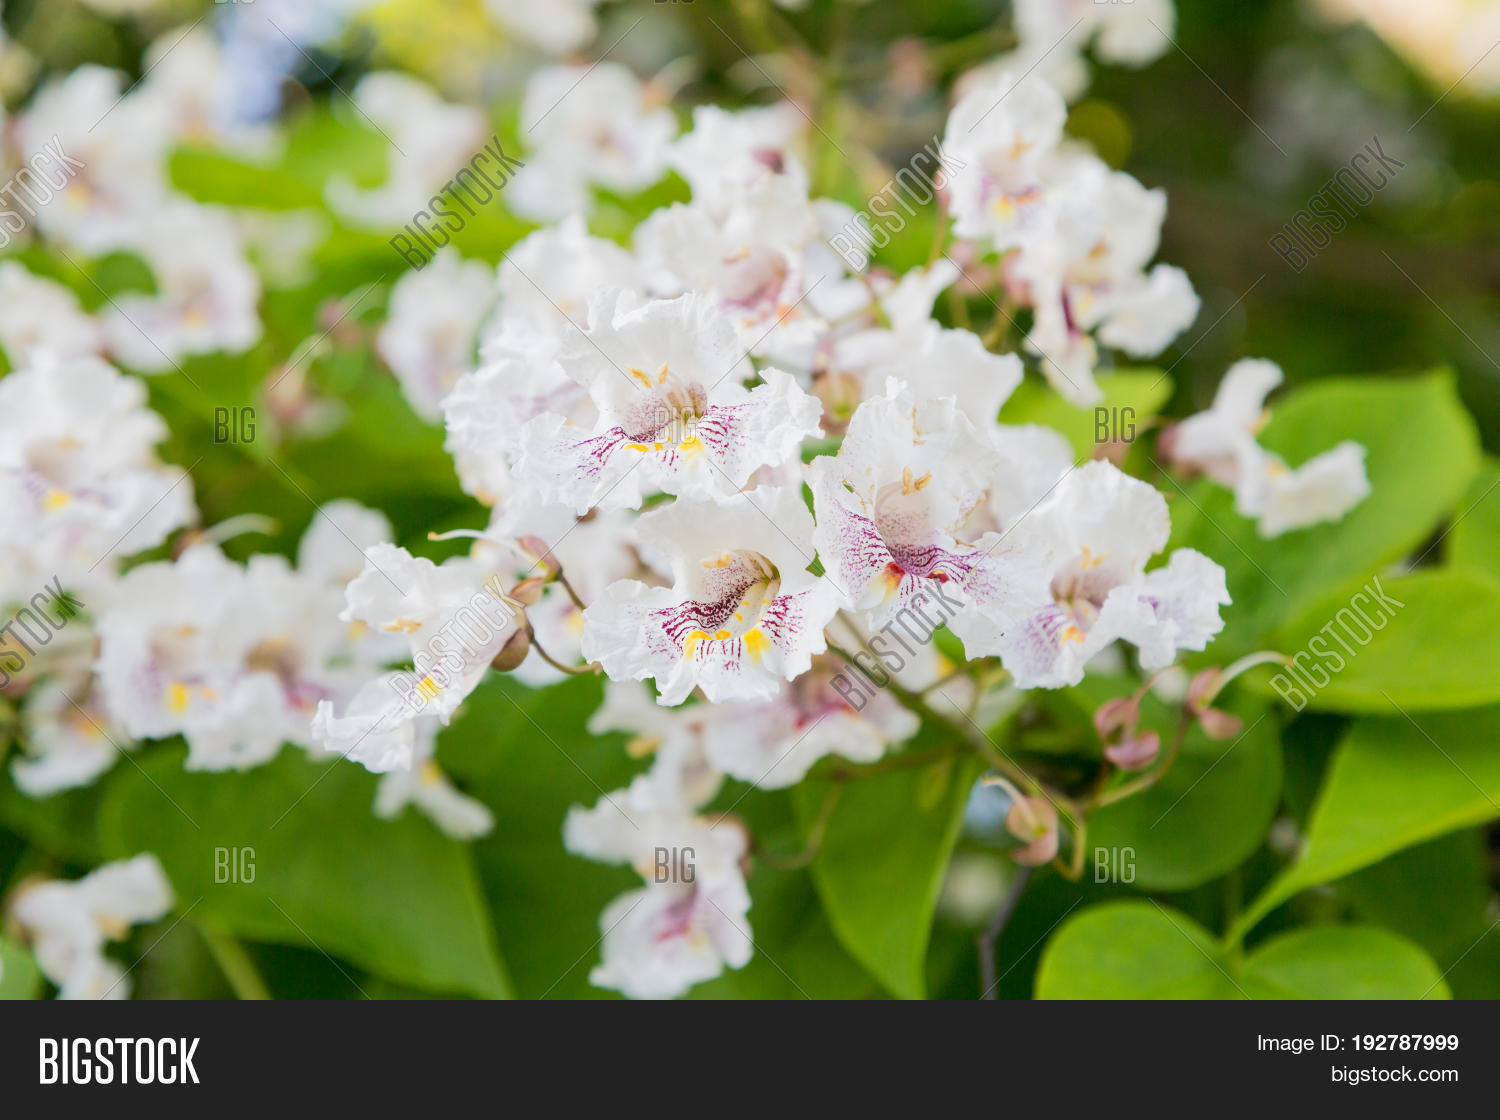 Flowering tree catalpa image photo free trial bigstock flowering tree catalpa bignonioides white flowers and green leaves on blurred background mightylinksfo